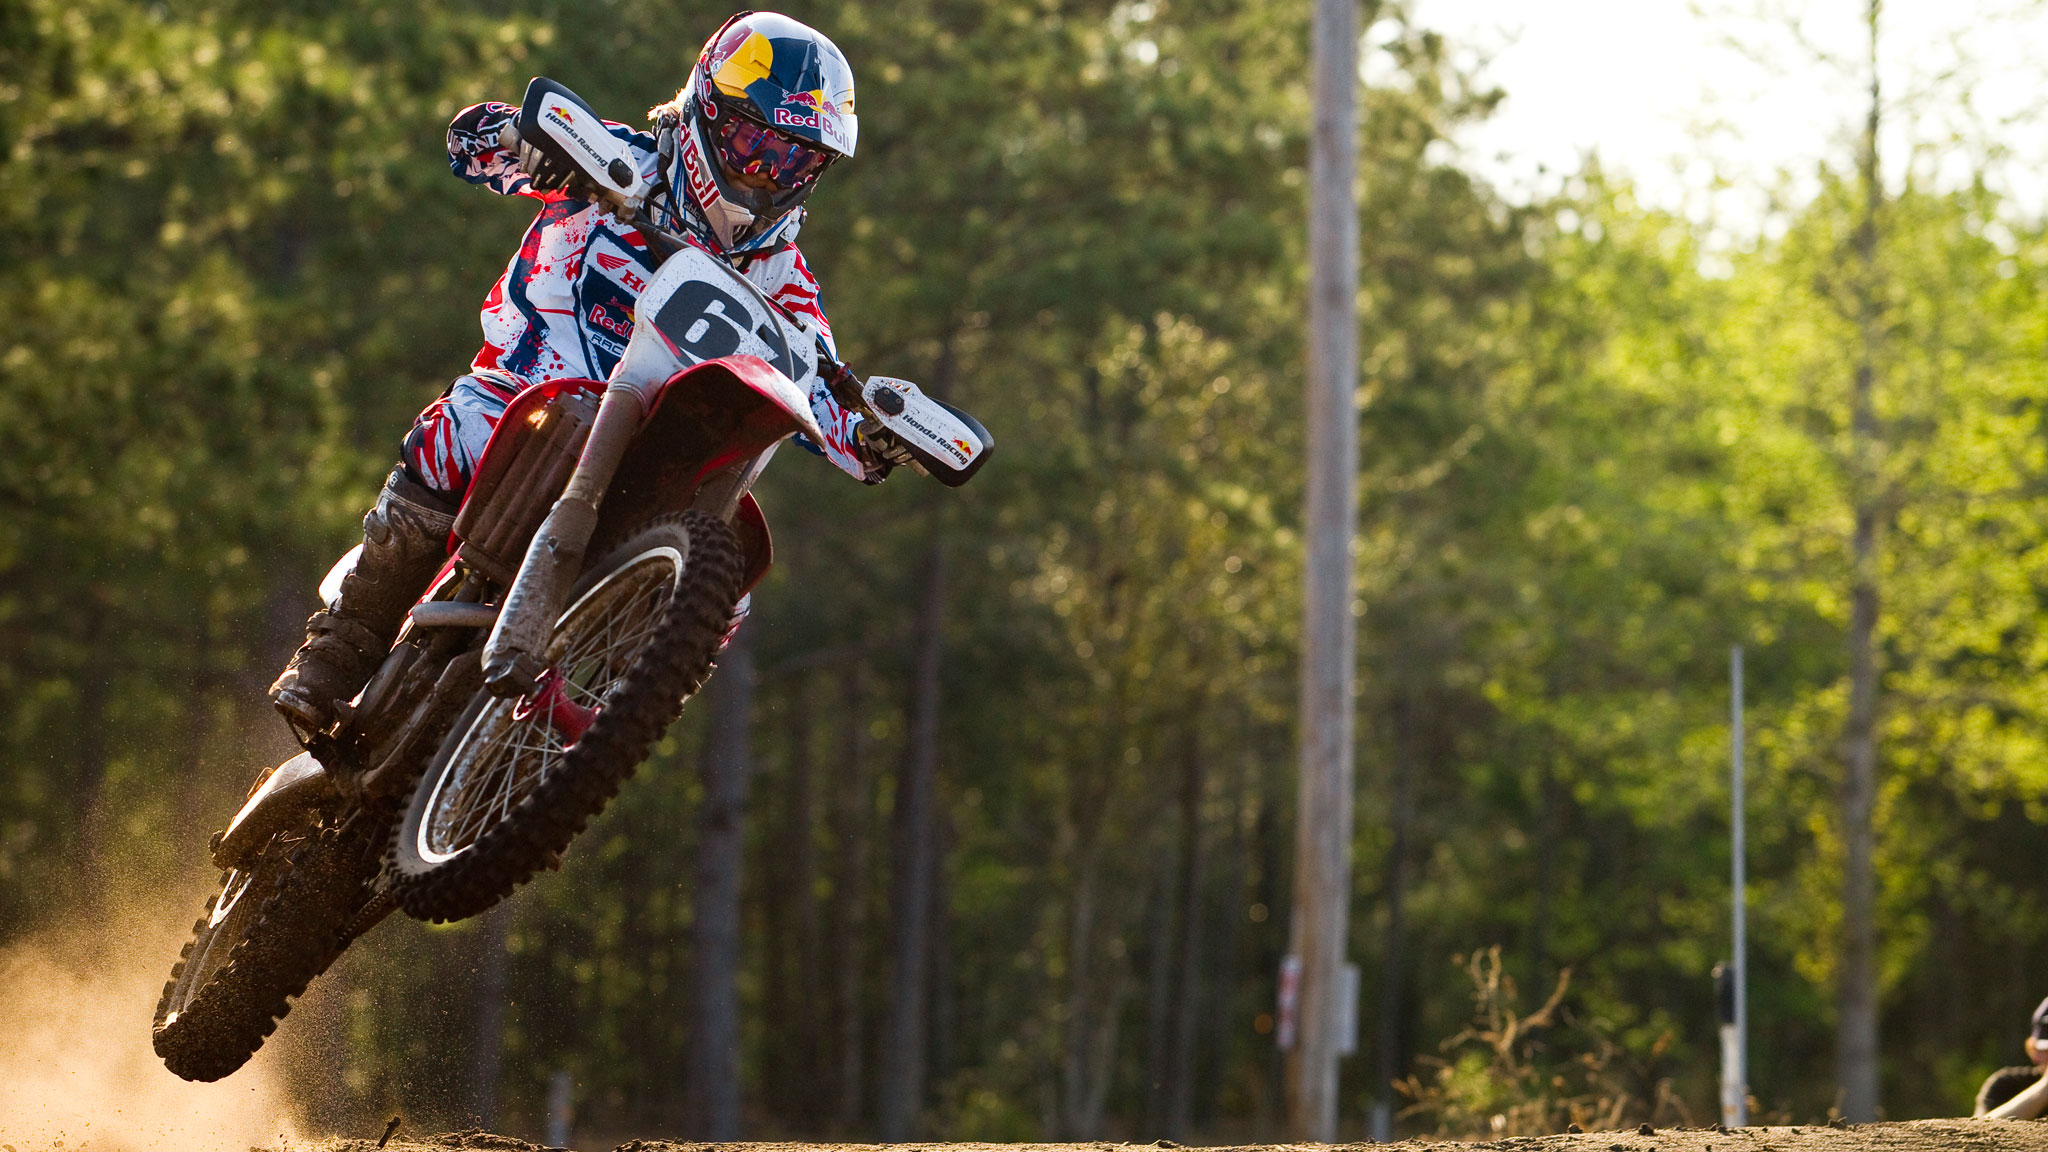 Women S Professional Motocross Faces Uphill Battle For Legitimacy